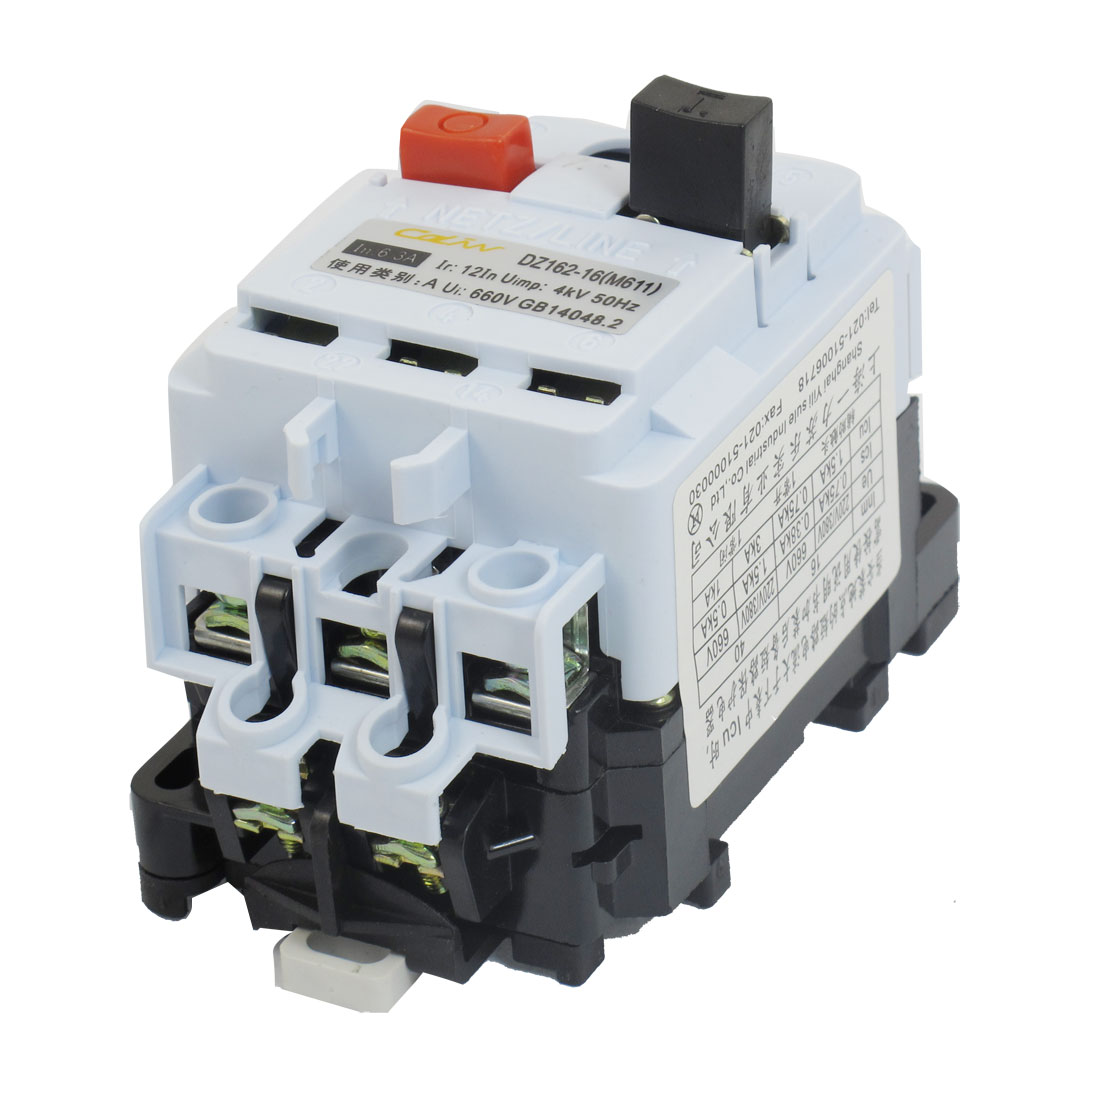 DZ162-16 AC 660V 4A-6.3A Adjustable 3 Pole DIN Rail Switch Circuit Breaker